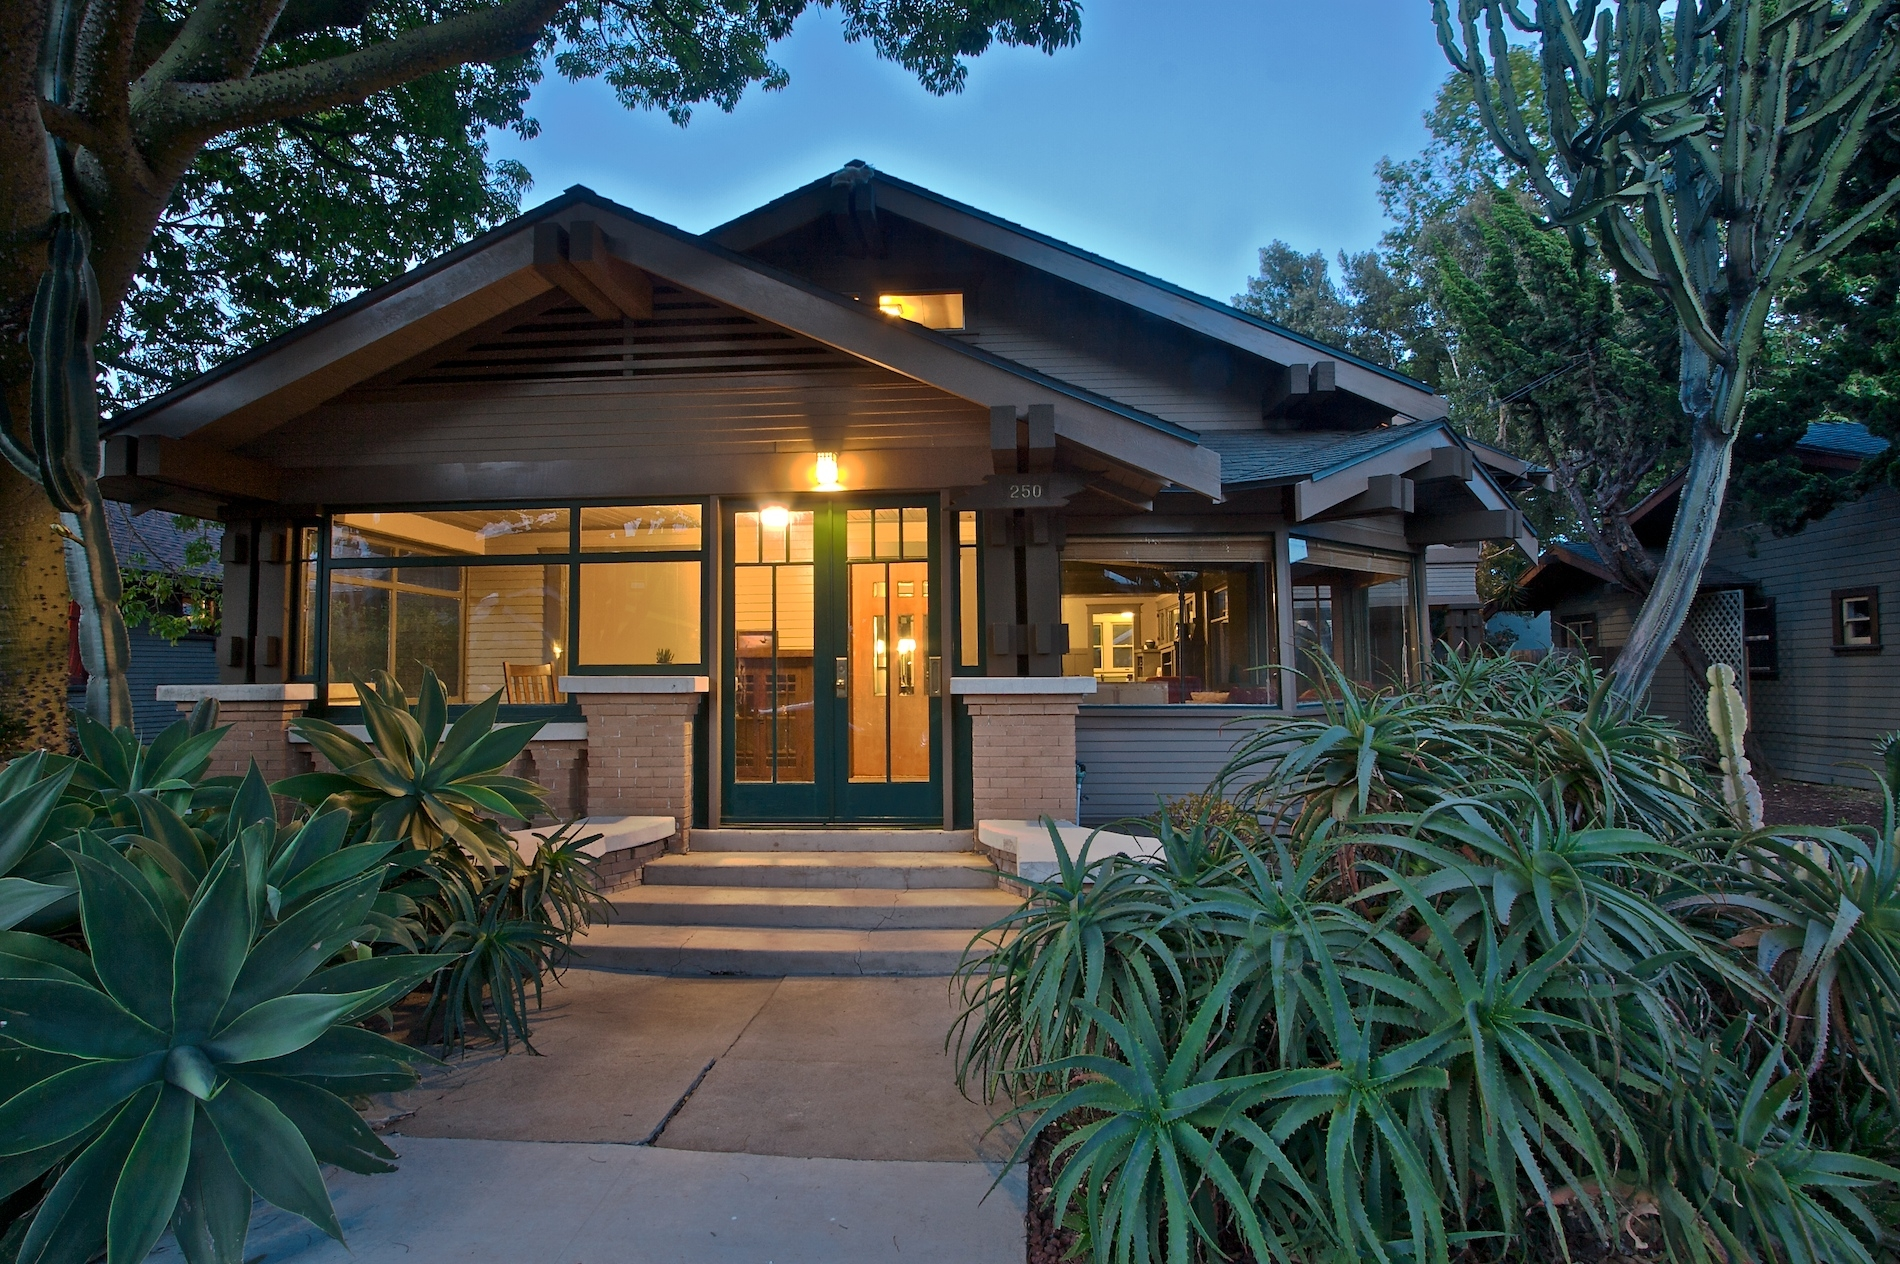 California craftsman bungalow style homes classic for Craftsman classic